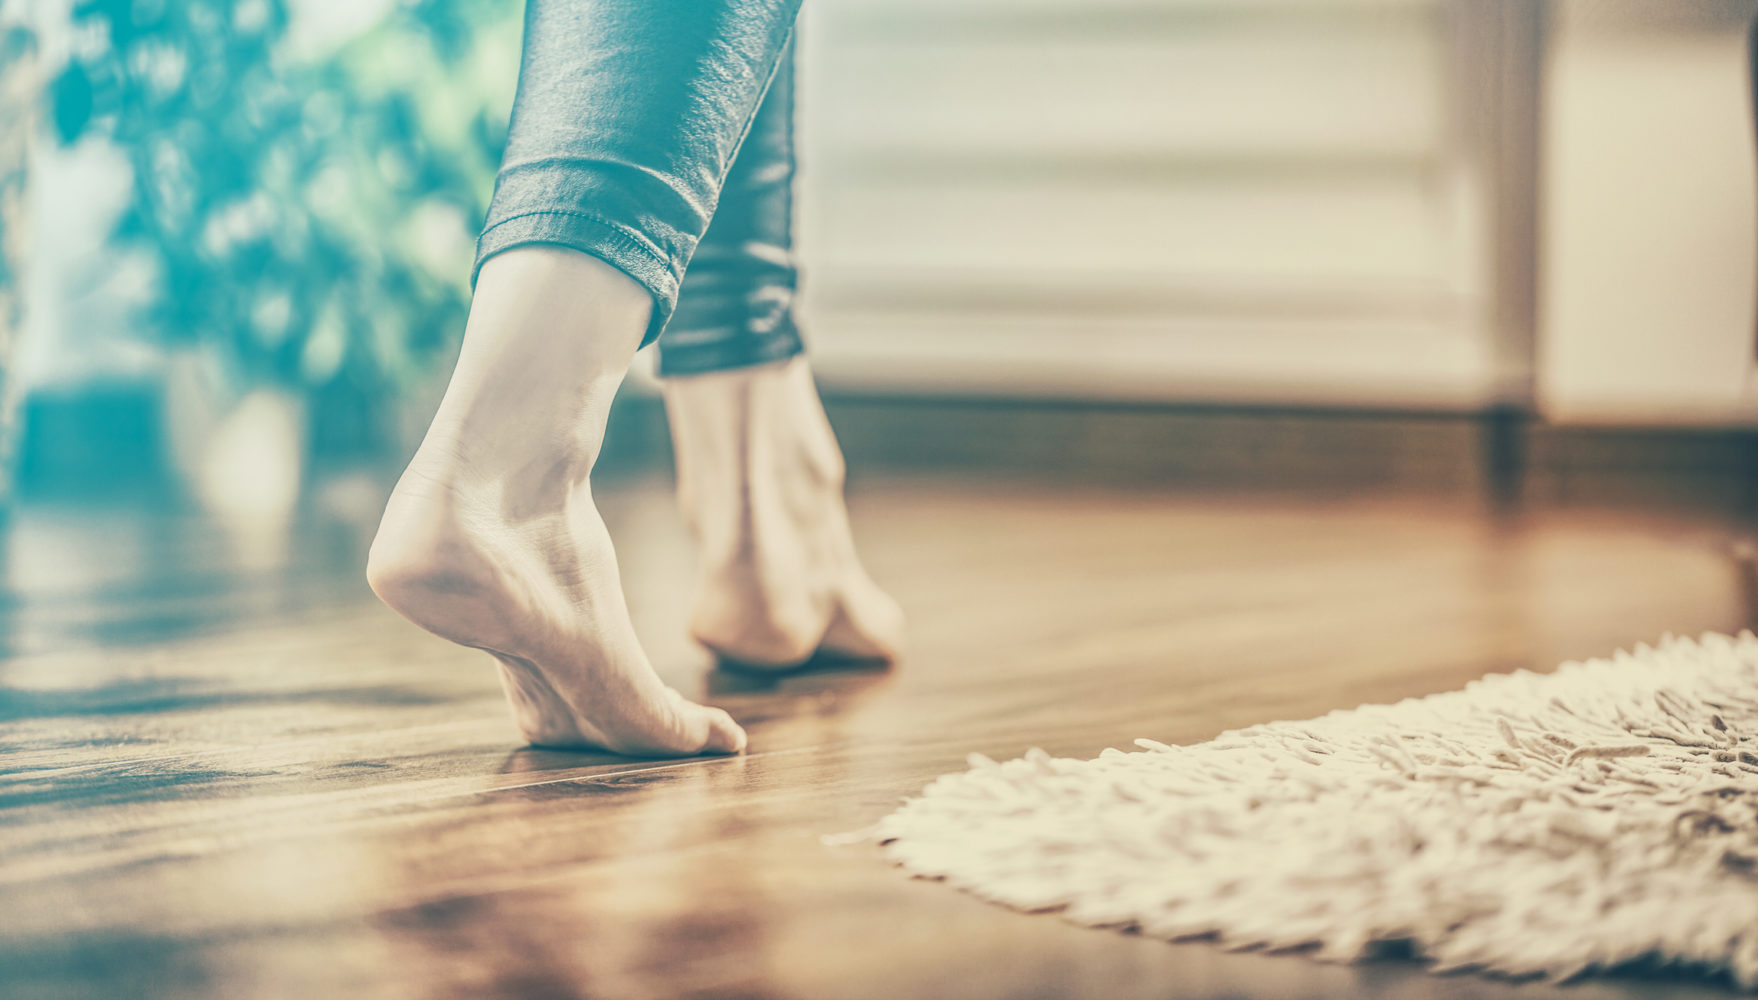 Bare feet on a parquet floor. Control floor heating with DEFA Cabin Control